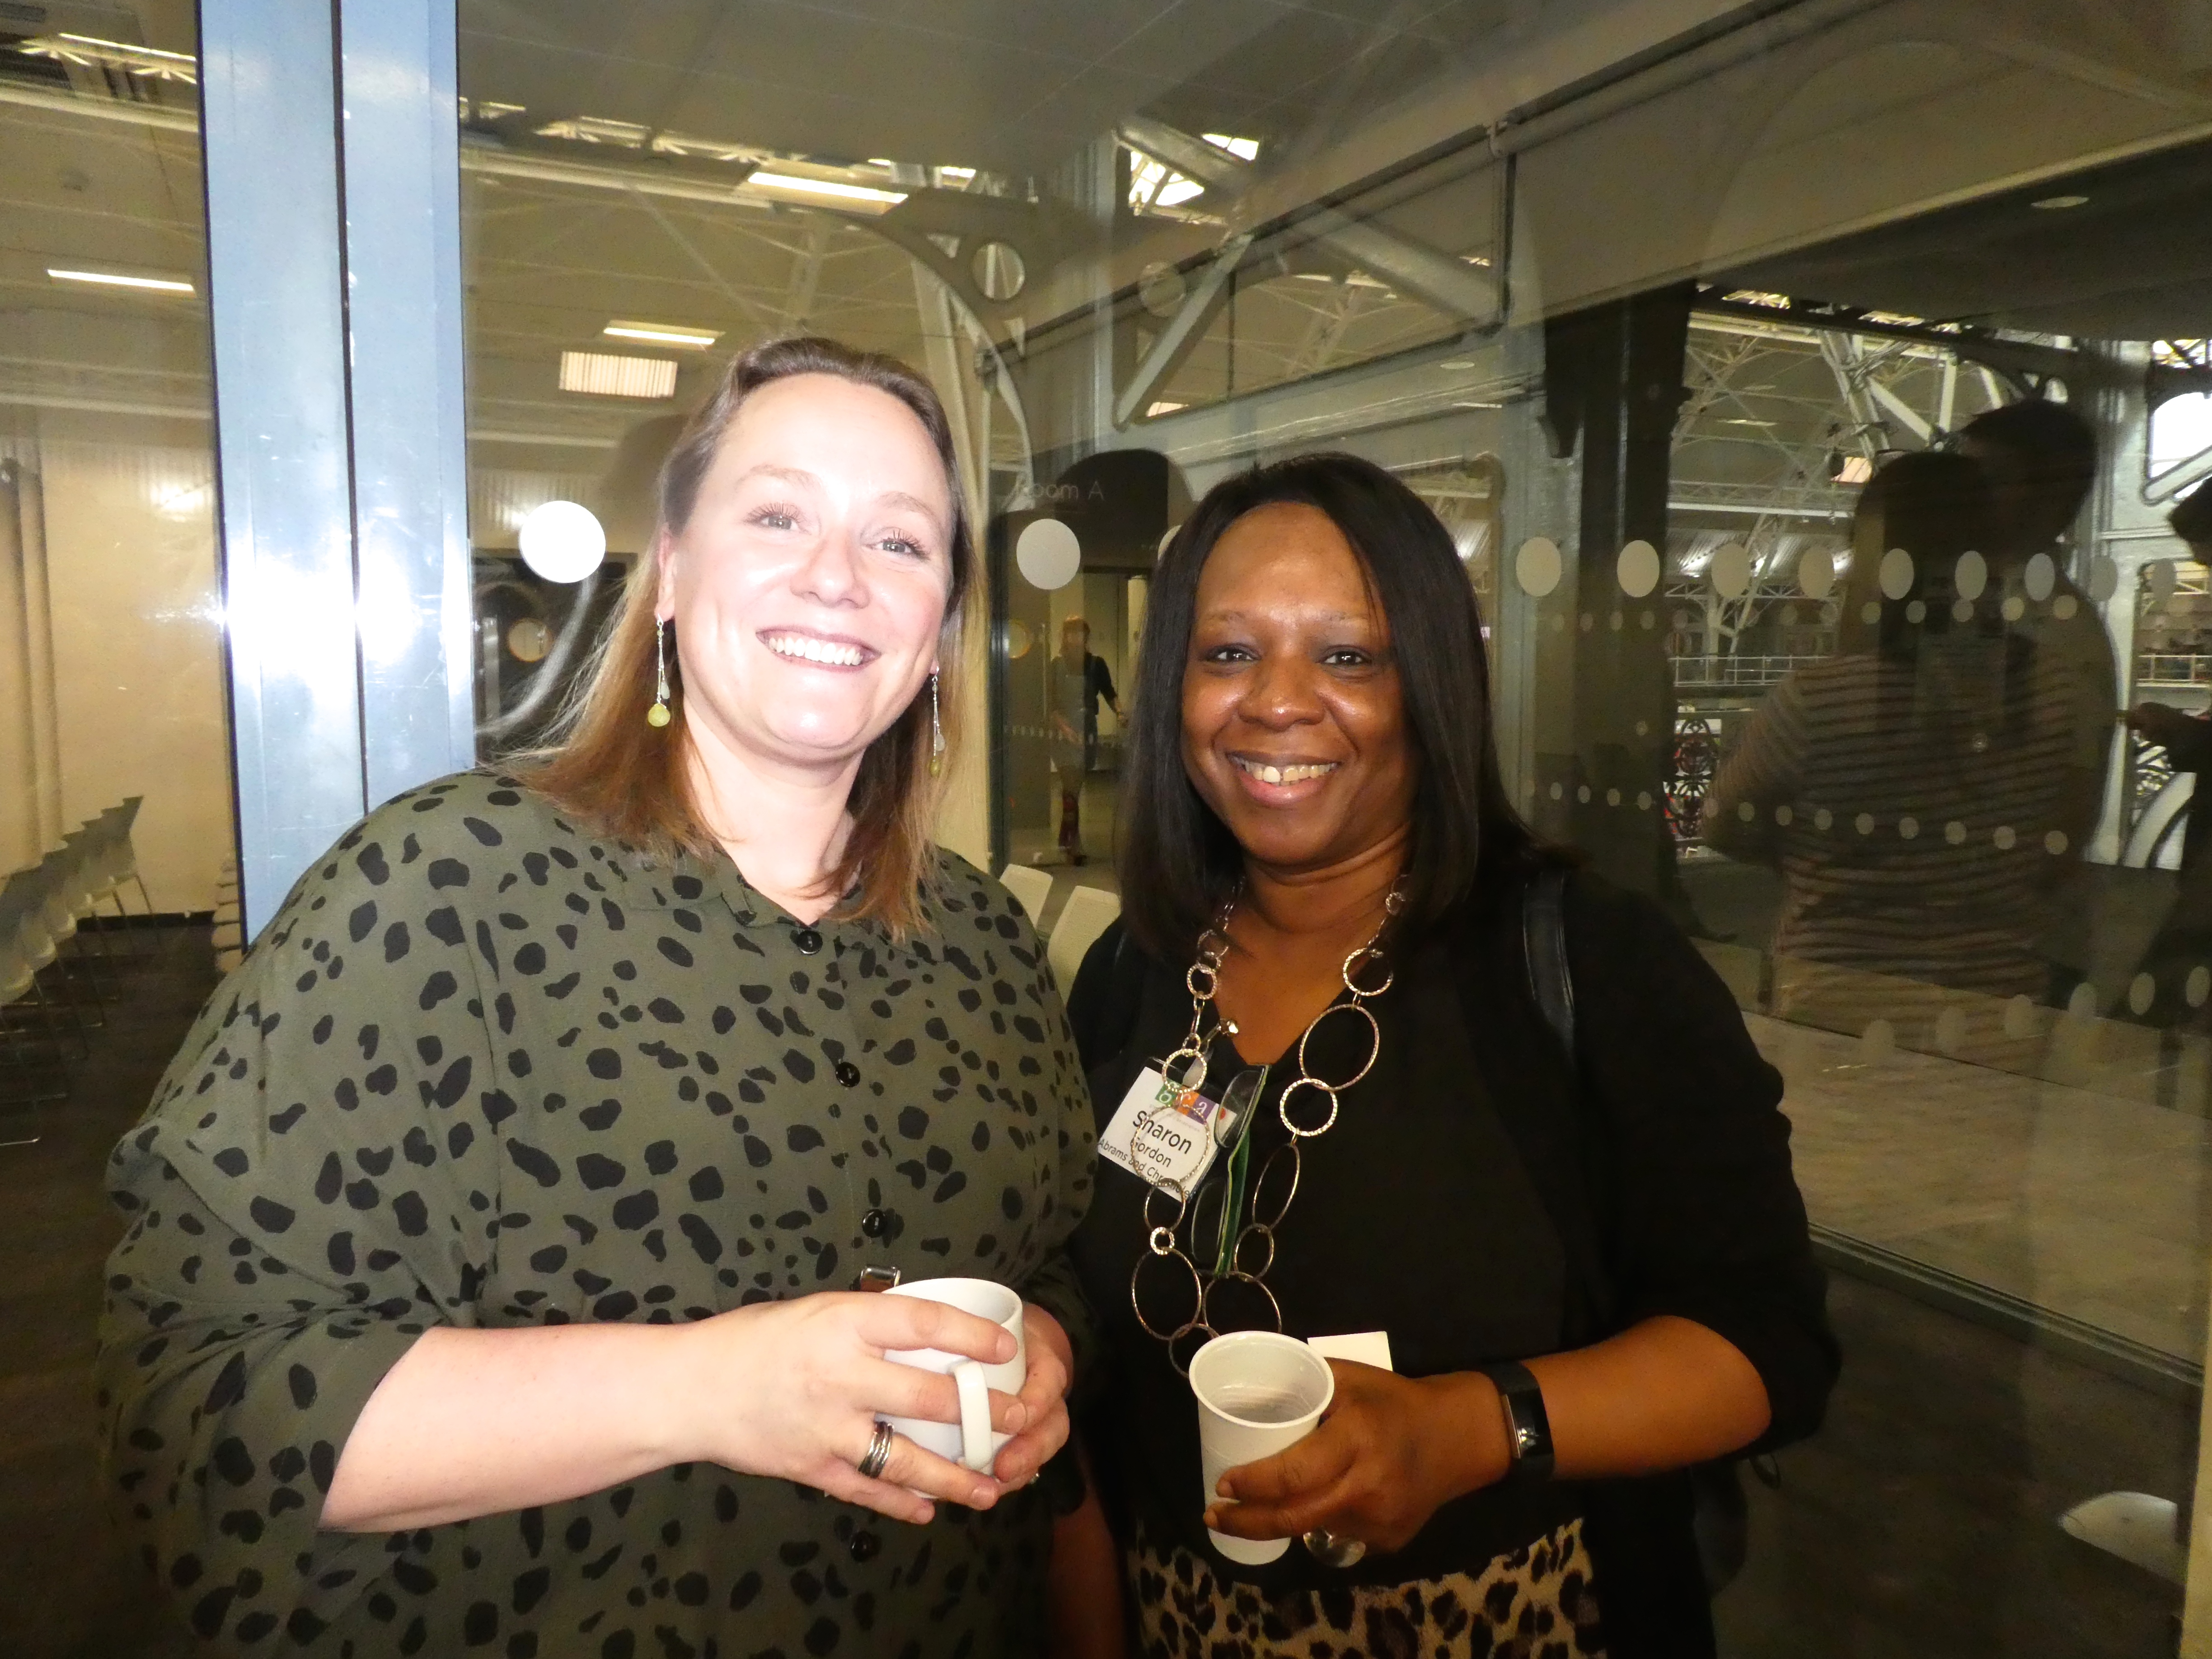 Above: John Lewis & Partners' Lisa Rutherford (left) with Abrams & Chronicle's Sharon Gordon at Tuesday's GCA event.